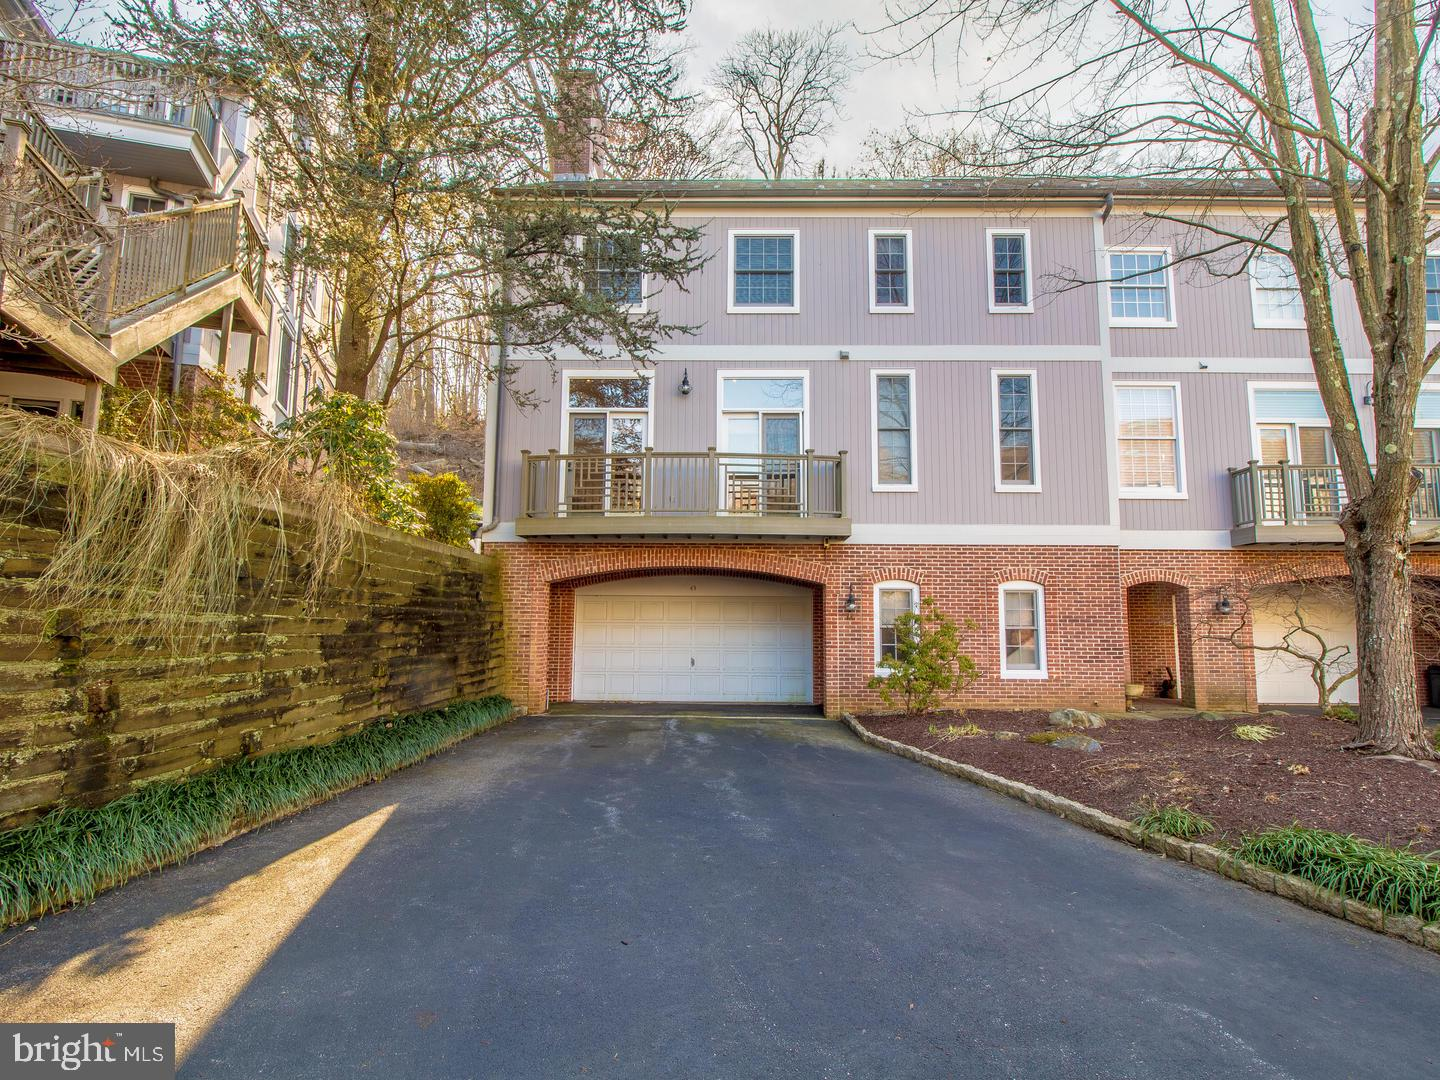 Extensively renovated 3 story end unit townhome in the very desirable gated community of Rockland Mills.  Enter this beautiful and meticulously cared for townhome through the spacious tile foyer.  This floor includes a room with ample closet space and is perfect for an office, den or workout room. Walk up the wide wood staircase and you will be greeted by an open floor plan with the great room that is open to dining area and kitchen.  The great room features a corner fireplace, gleaming hardwood floors and French doors that bring in abundant natural sunlight and lead to a large deck.  Here you will love entertaining or relaxing while taking in the view of the terraced hillside and woods.  Beautiful custom kitchen boasts gourmet stainless steel appliances including brand new Sub Zero refrigerator and Kitchen Aid double ovens, warming drawer and cooktop as well as granite counters, glass tile back splash and inset cabinetry. Adjacent to the great room is a lovely sitting room with French doors that lead to a standing balcony.  This room, with an adjoining full bath, can easily become a bedroom on the main floor by adding doors. On the third floor an impressive master suite and a second bedroom with en-suite bath await.  The master suite features a private balcony, three closets and luxurious bath including large seamless glass shower, spacious vanity with granite counter and nook with glass shelving.  Additional features include a 2-car garage with driveway for additional parking, laundry on the the bedroom level and all baths that have been fully updated. Located on the banks of the Brandywine River you will enjoy nature while being conveniently located only minutes from restaurants and shopping. This move-in ready, beautifully appointed townhome is a must see, and all furnishings can be negotiated.